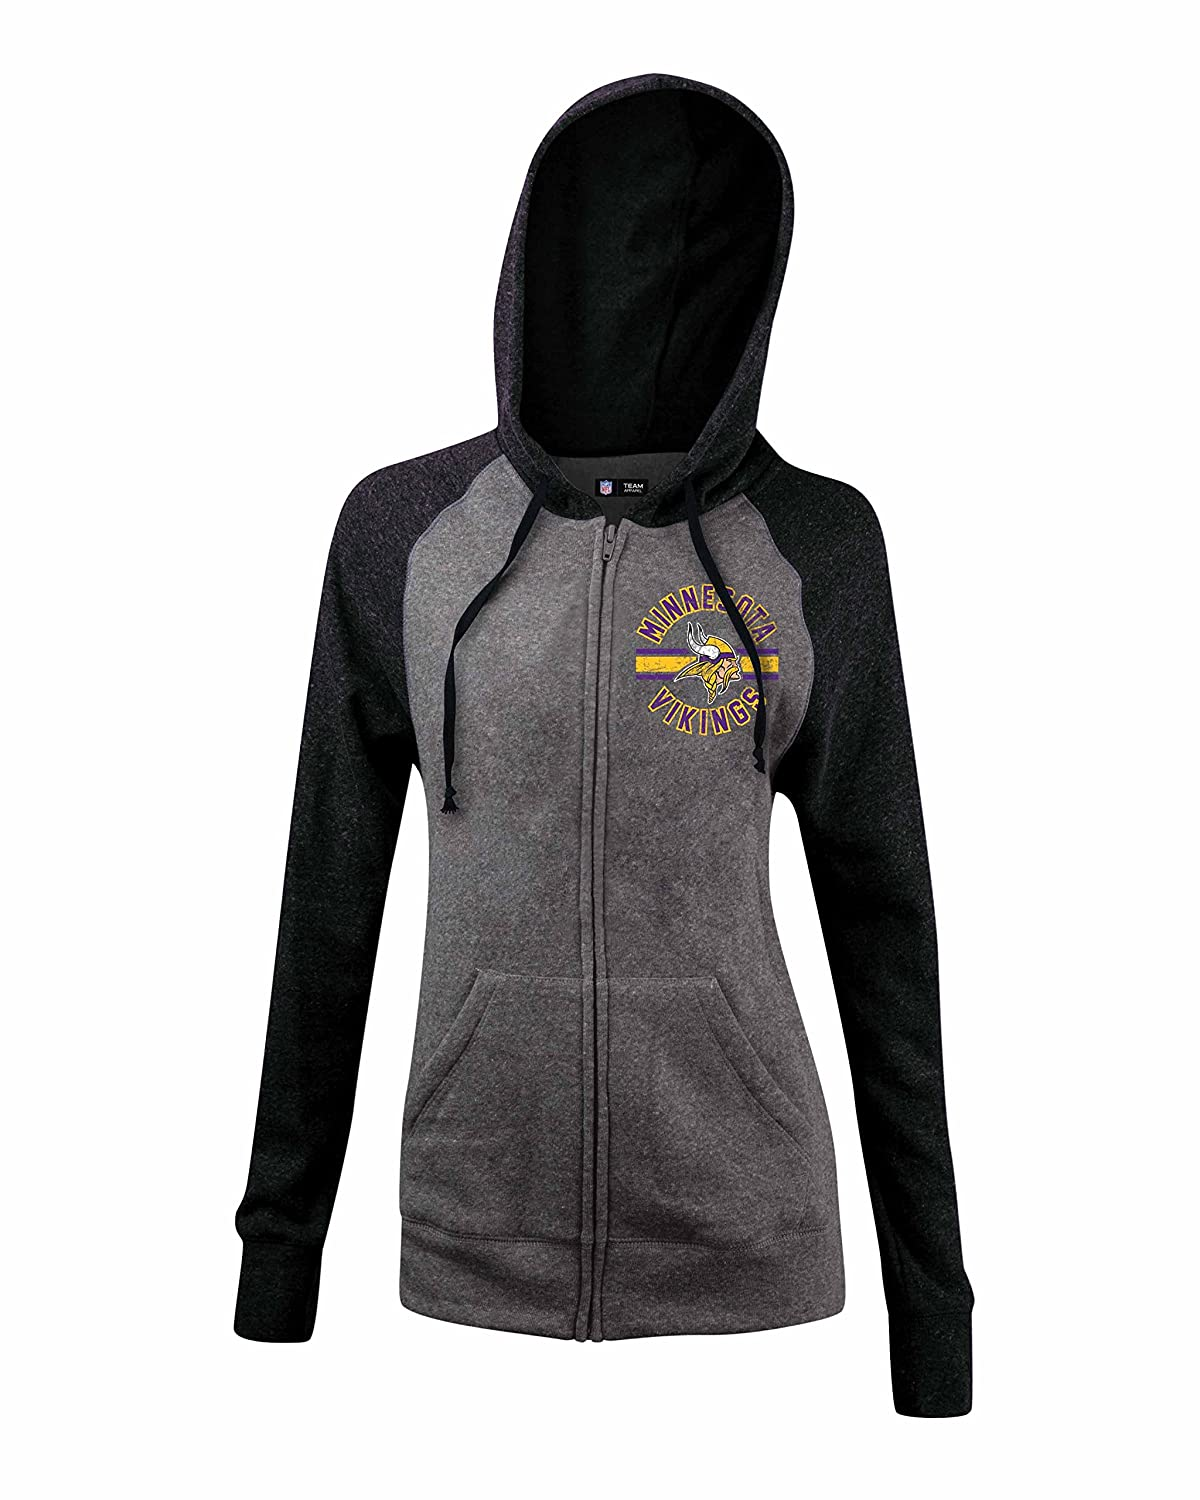 a9d76841a7b A-Team Apparel NFL Ladies Tri Blend Fleece Zip Up Hoodie with Contrast  Sleeves and Hood